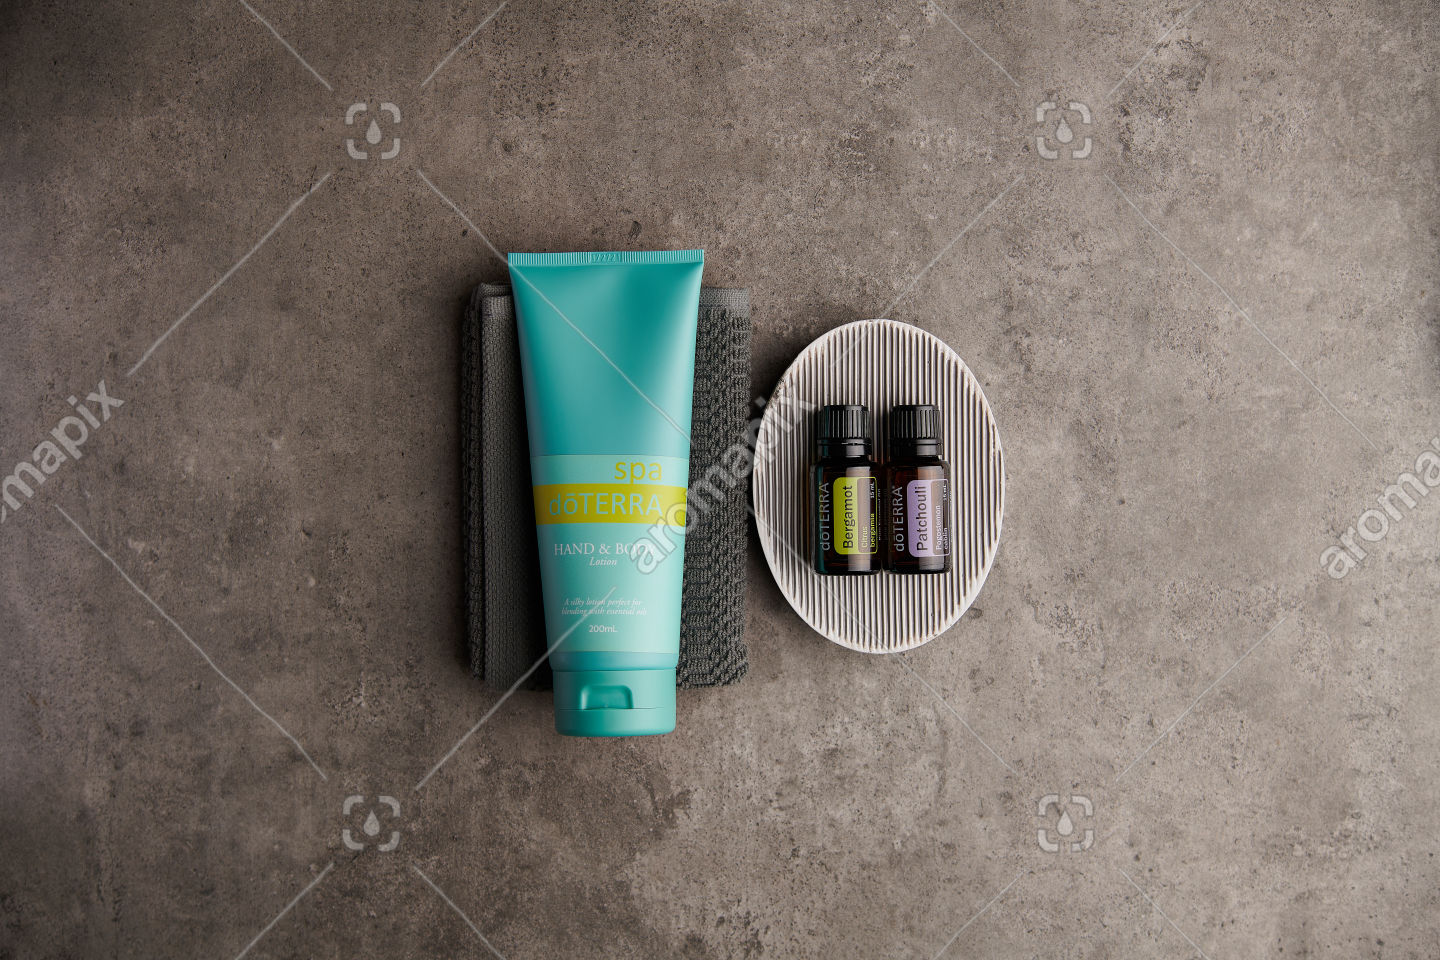 doTERRA Spa Hand and Body Lotion with Bergamot and Patchouli essential oils on stone